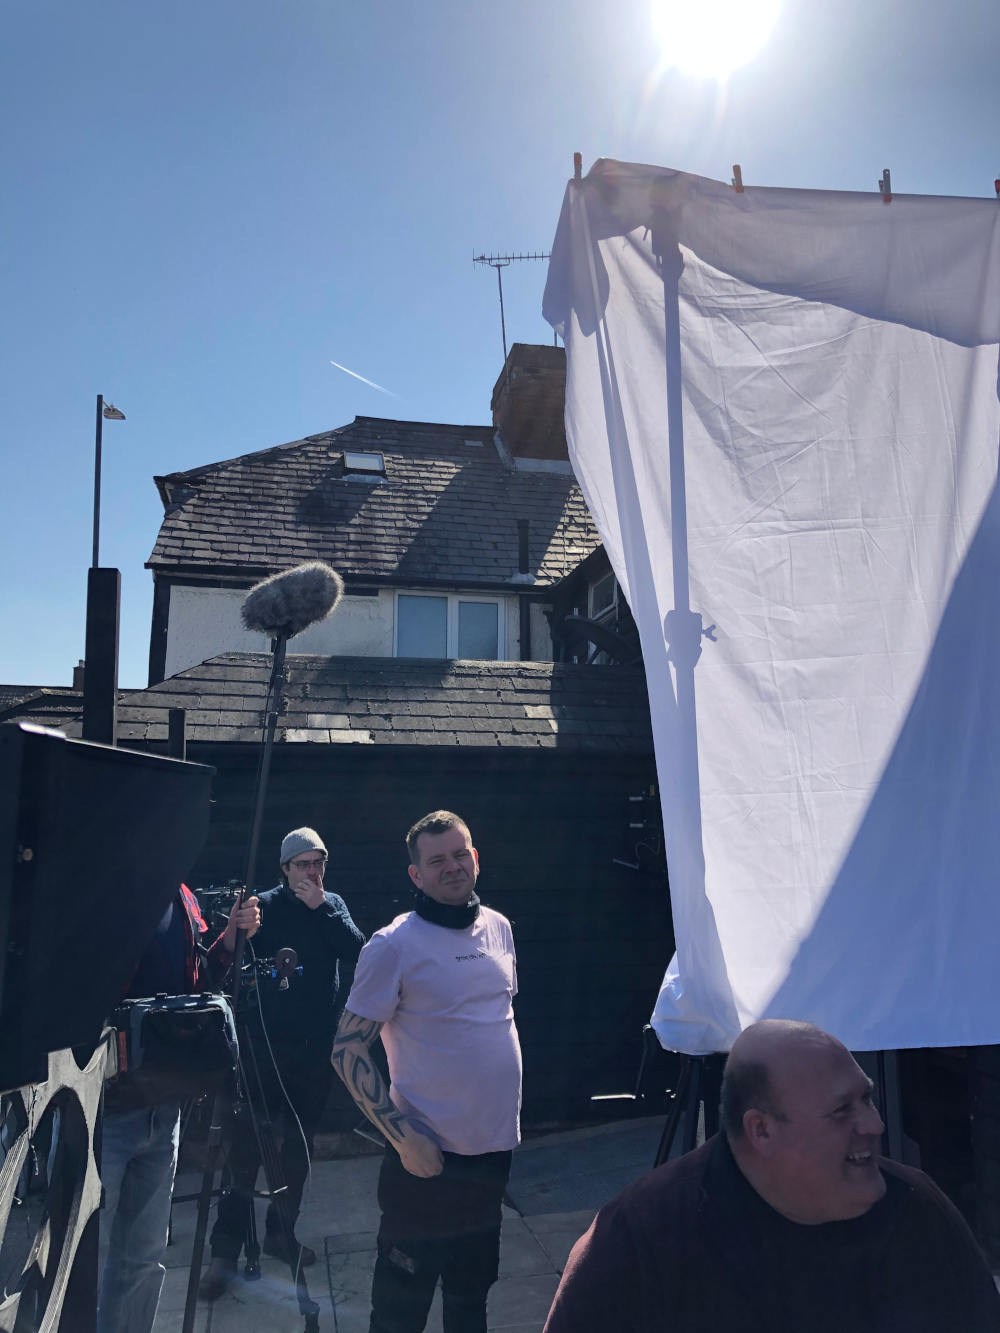 Behind the scenes photo from short film True Purpose set in a pub